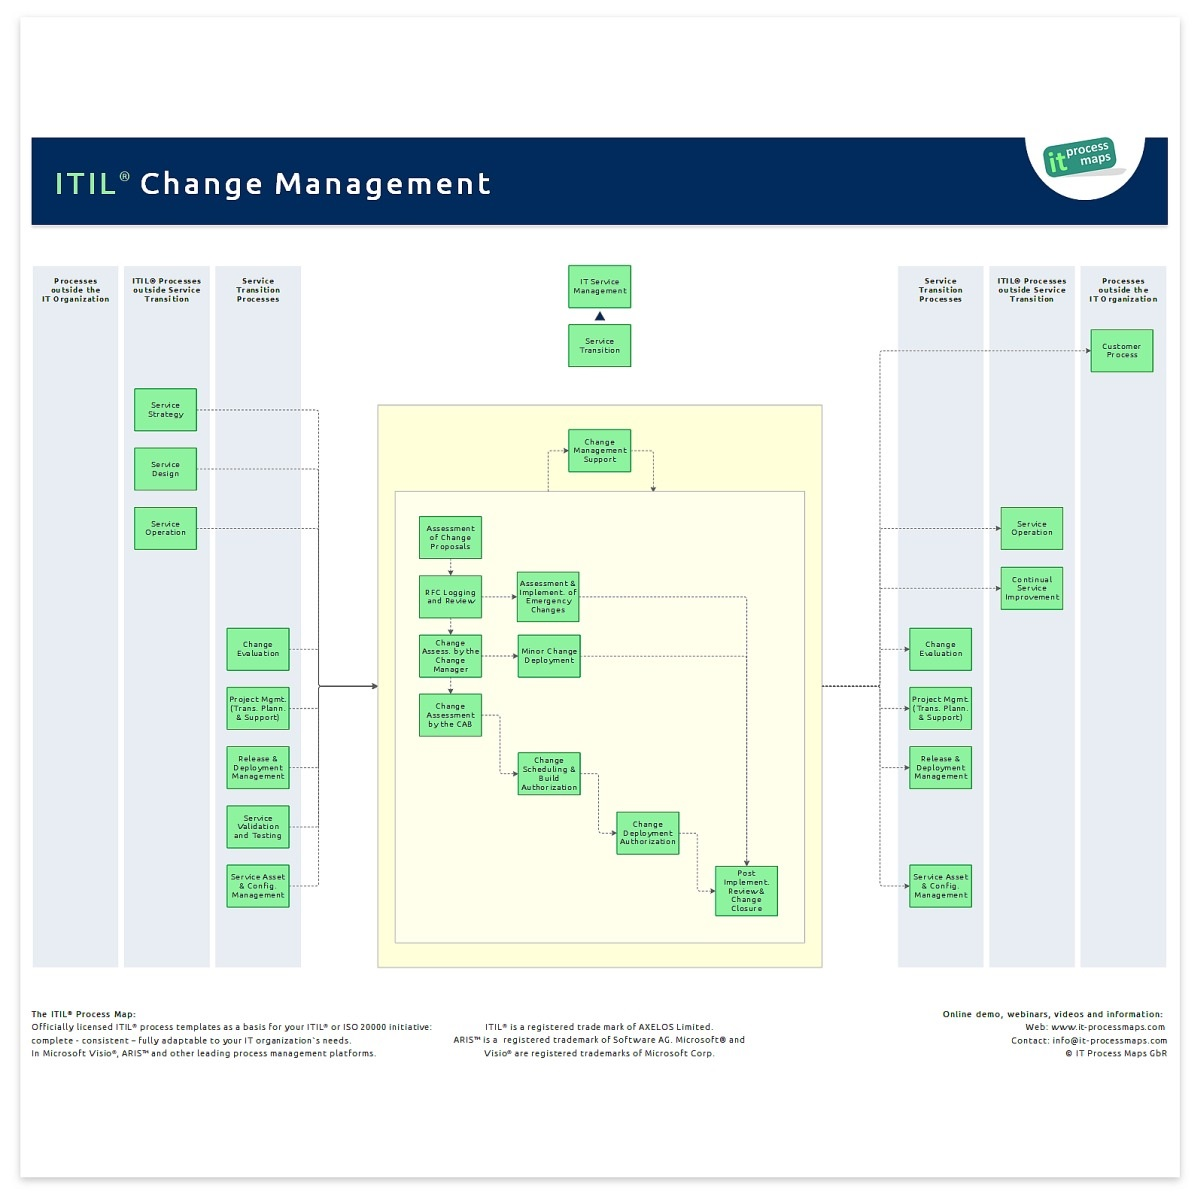 002 Awesome Change Management Proces Template High Def Full